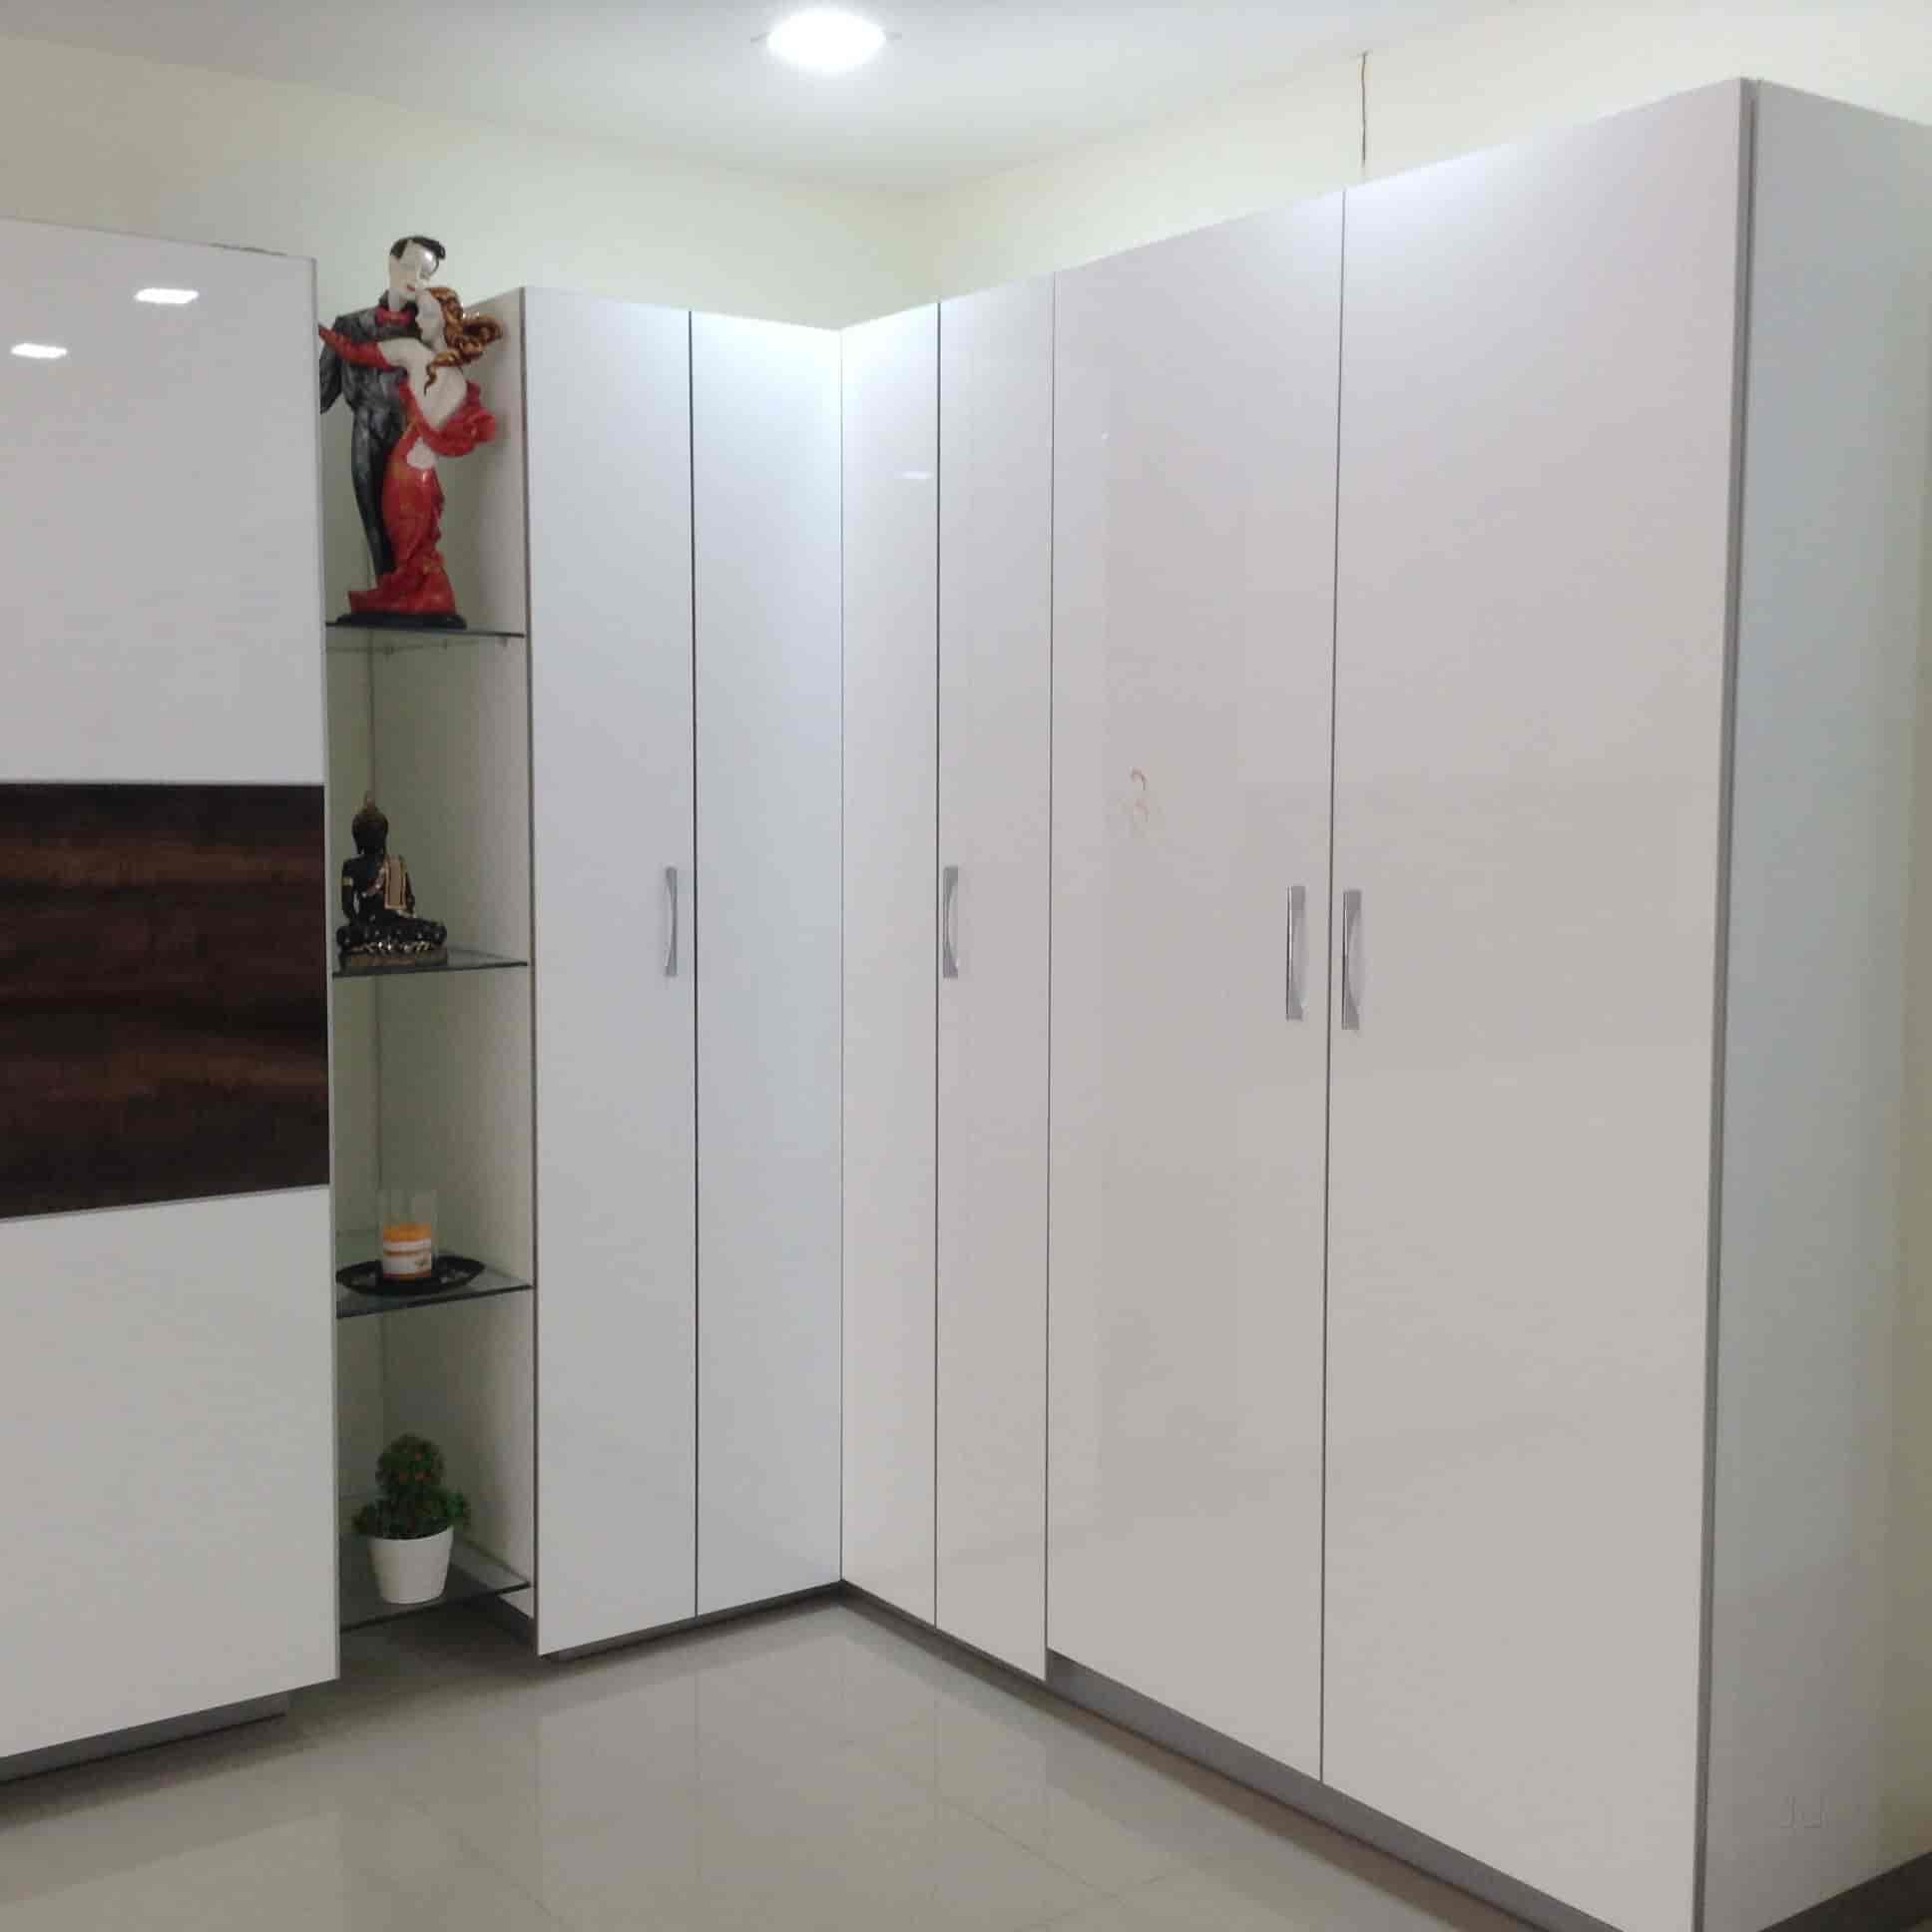 Kitchen Gallery - Modular Kitchen Dealers in Kashipur - Justdial